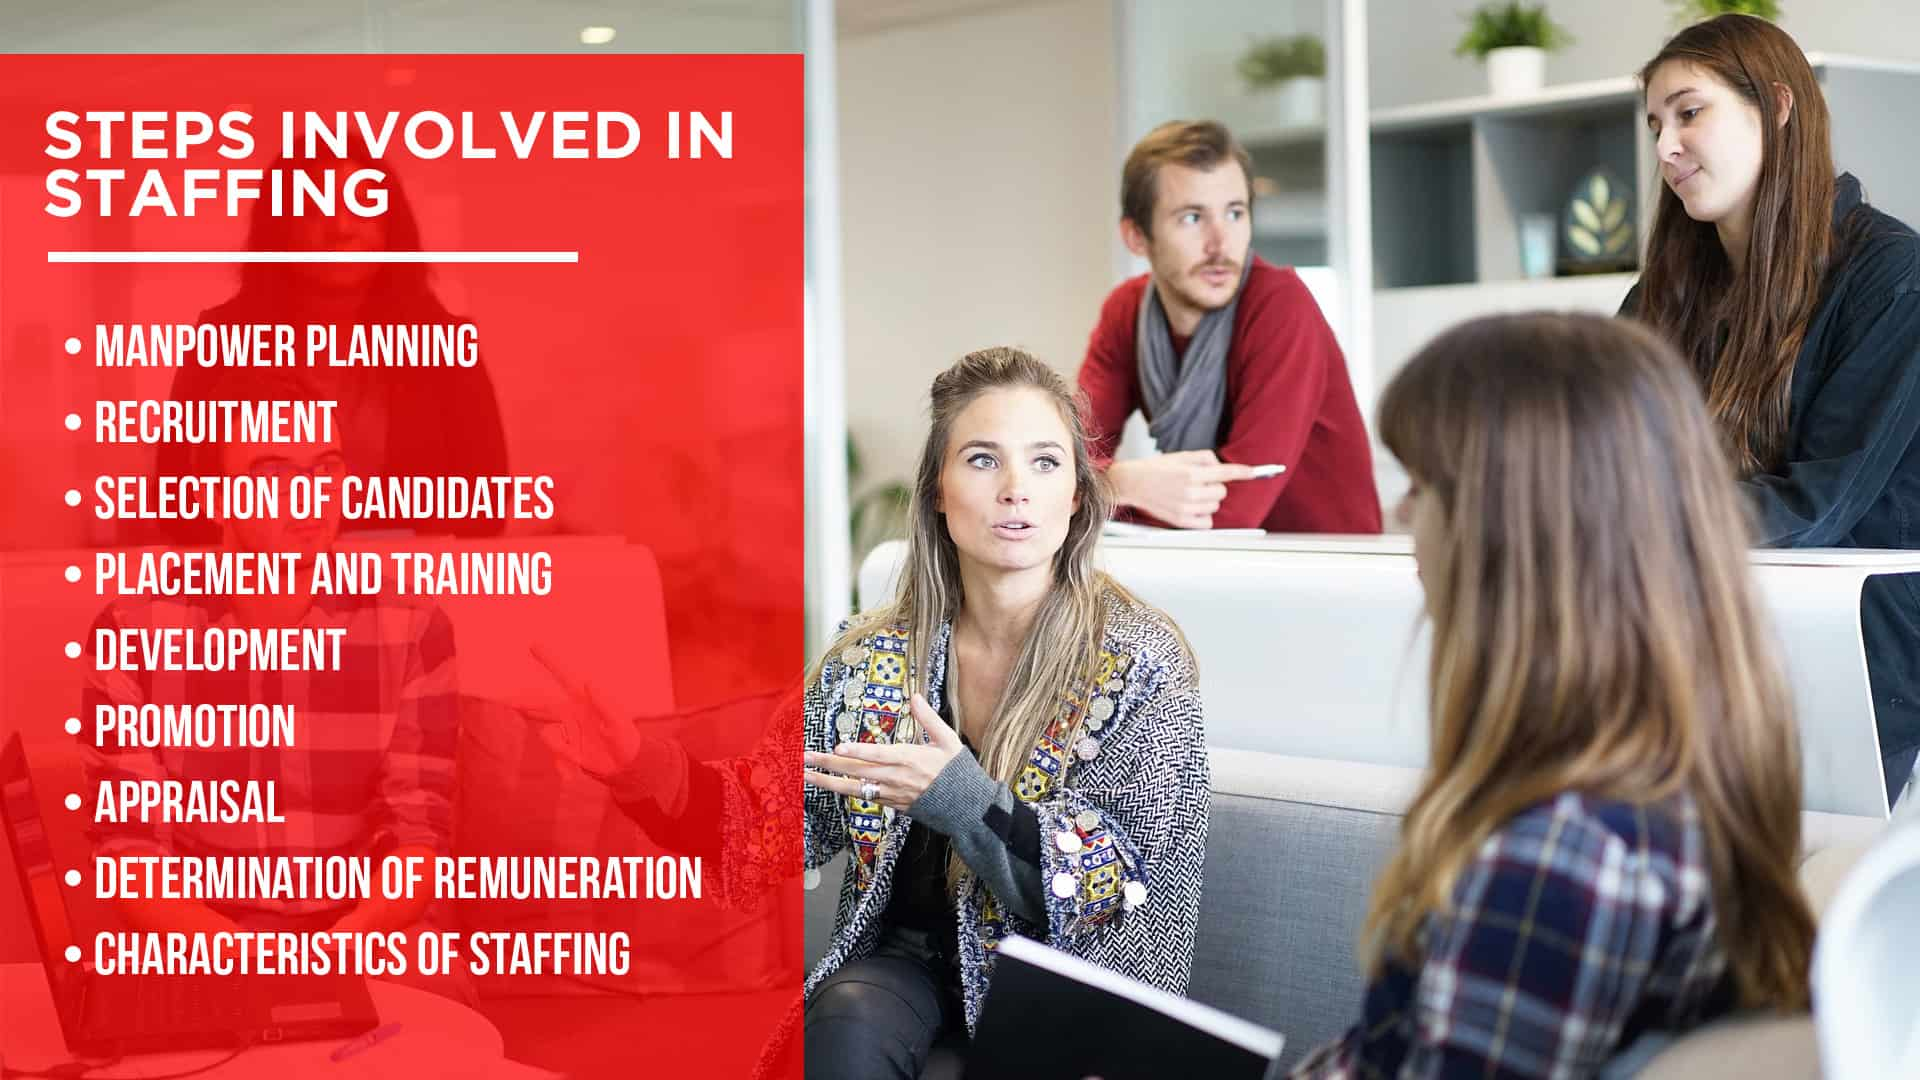 Staffing and Procedure involved in Staffing